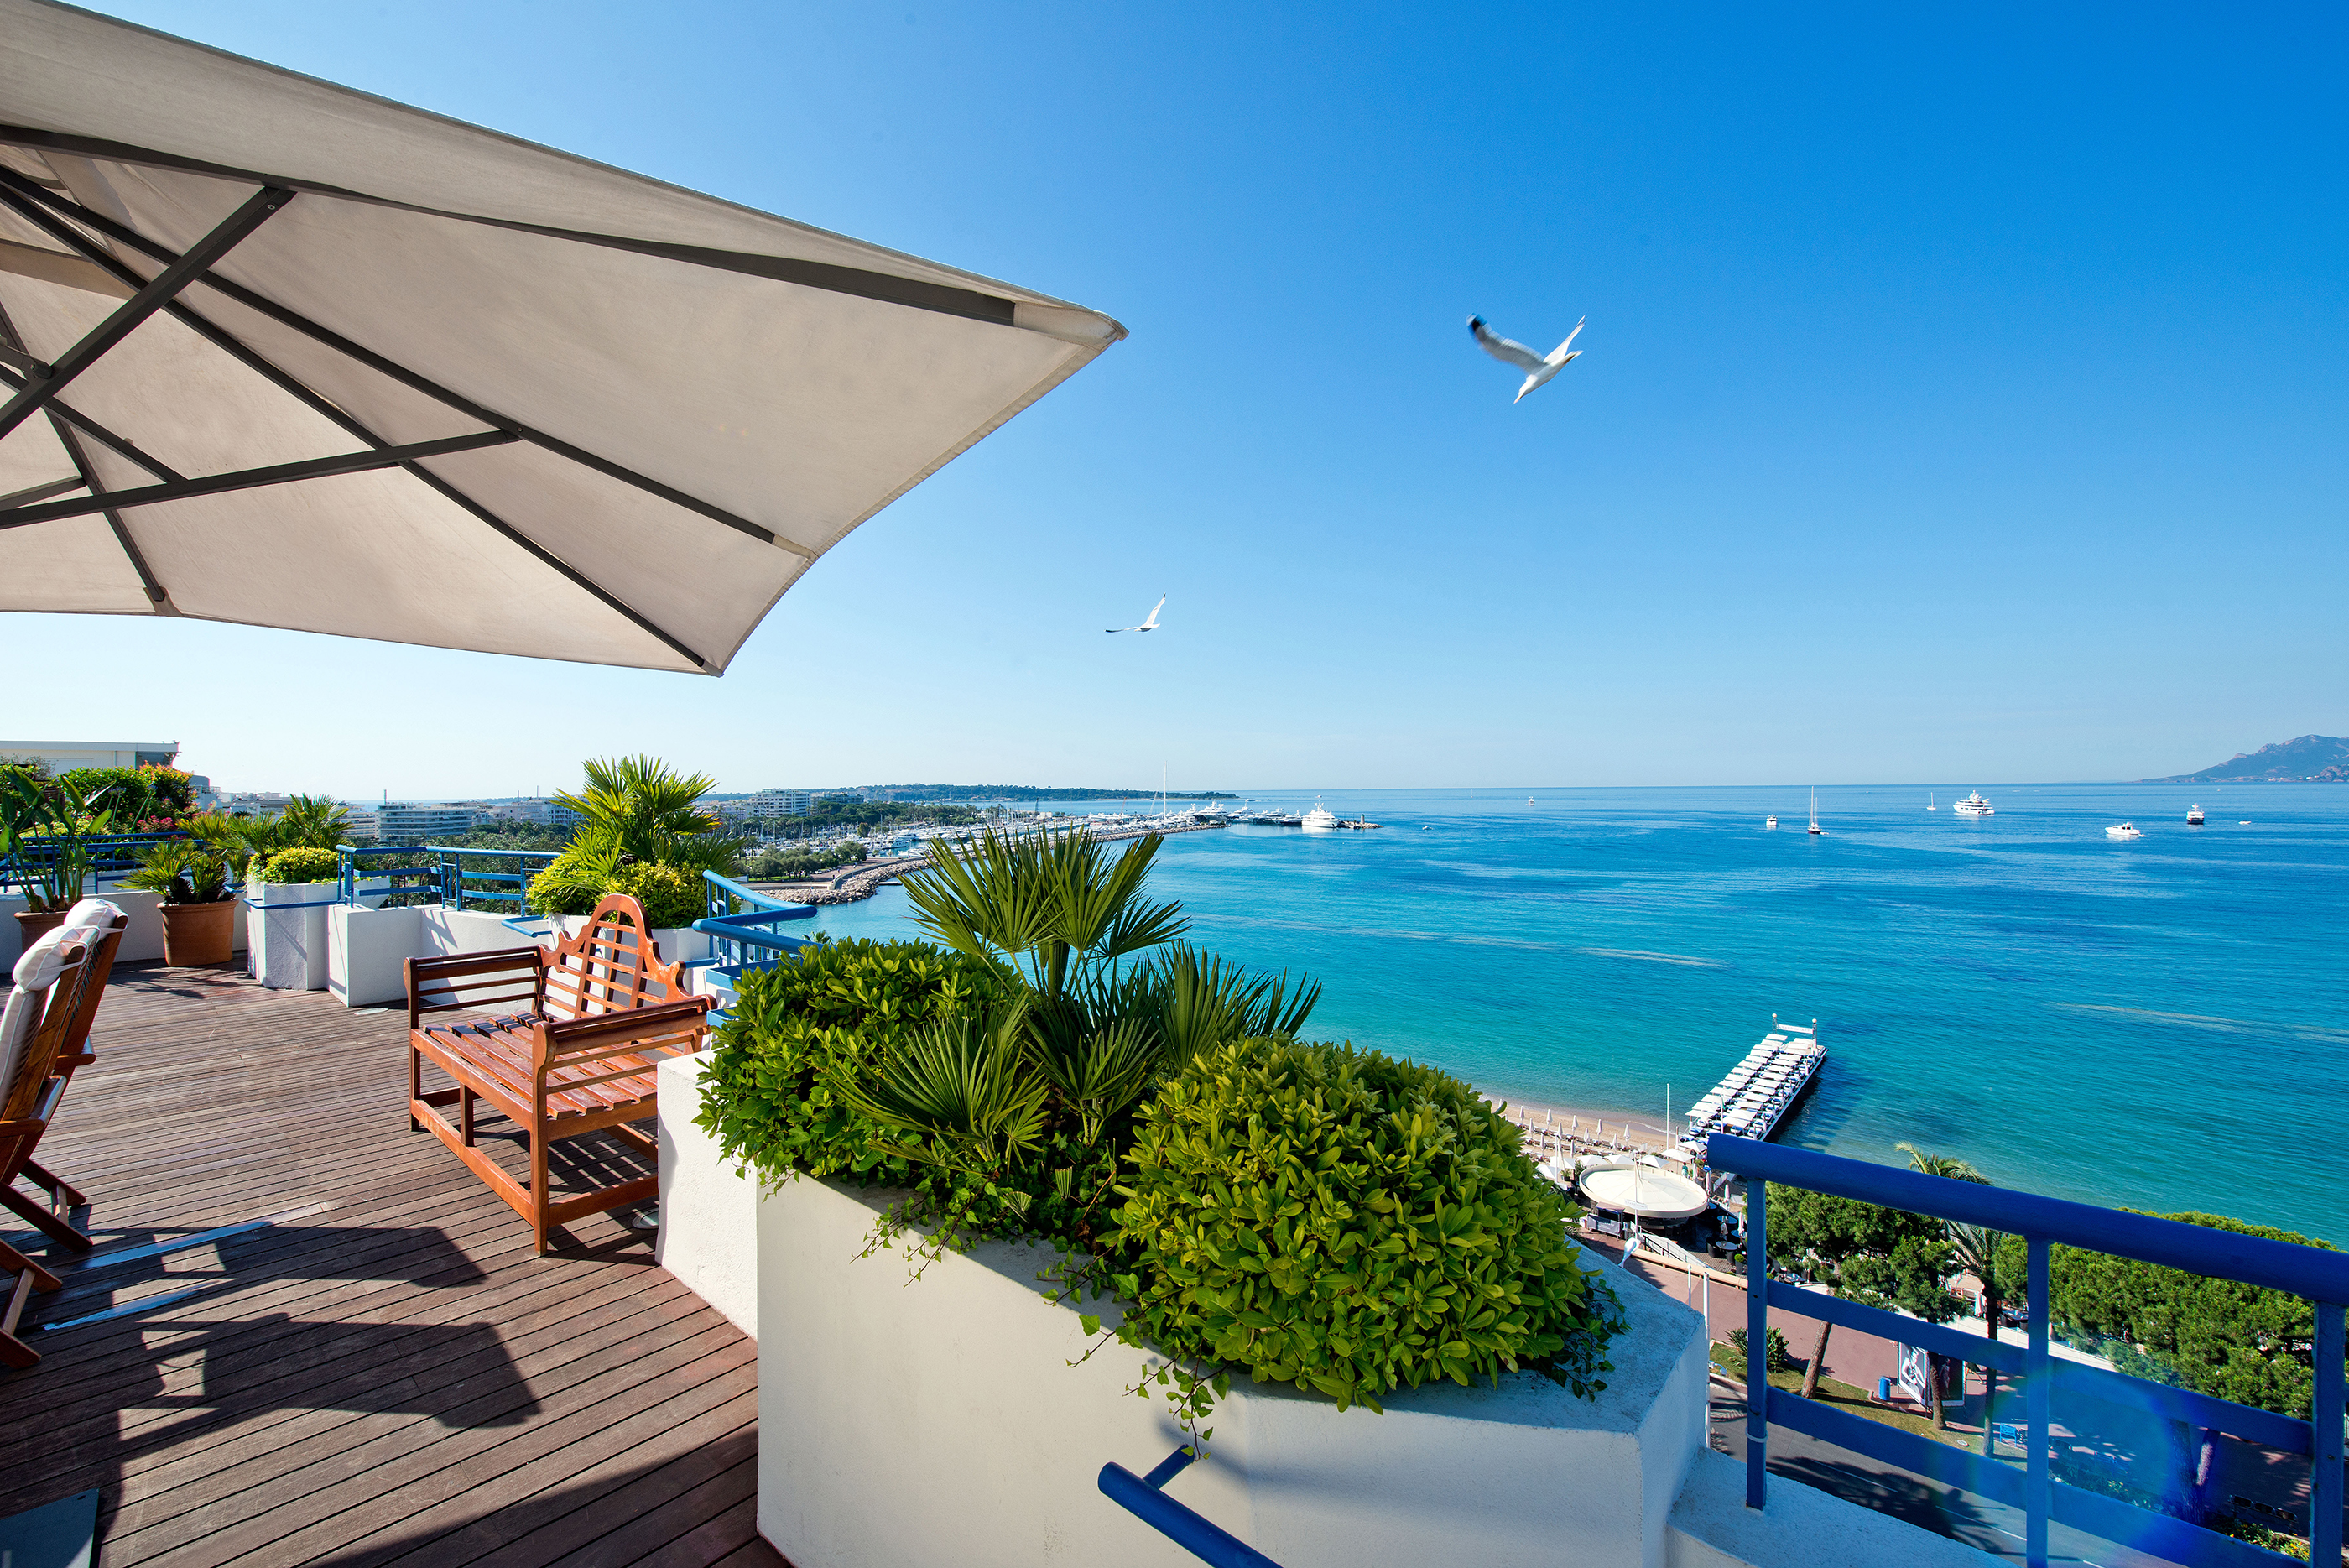 171102-lavish-hotel-rooms-penthouse-suite-grand-hyatt-cannes